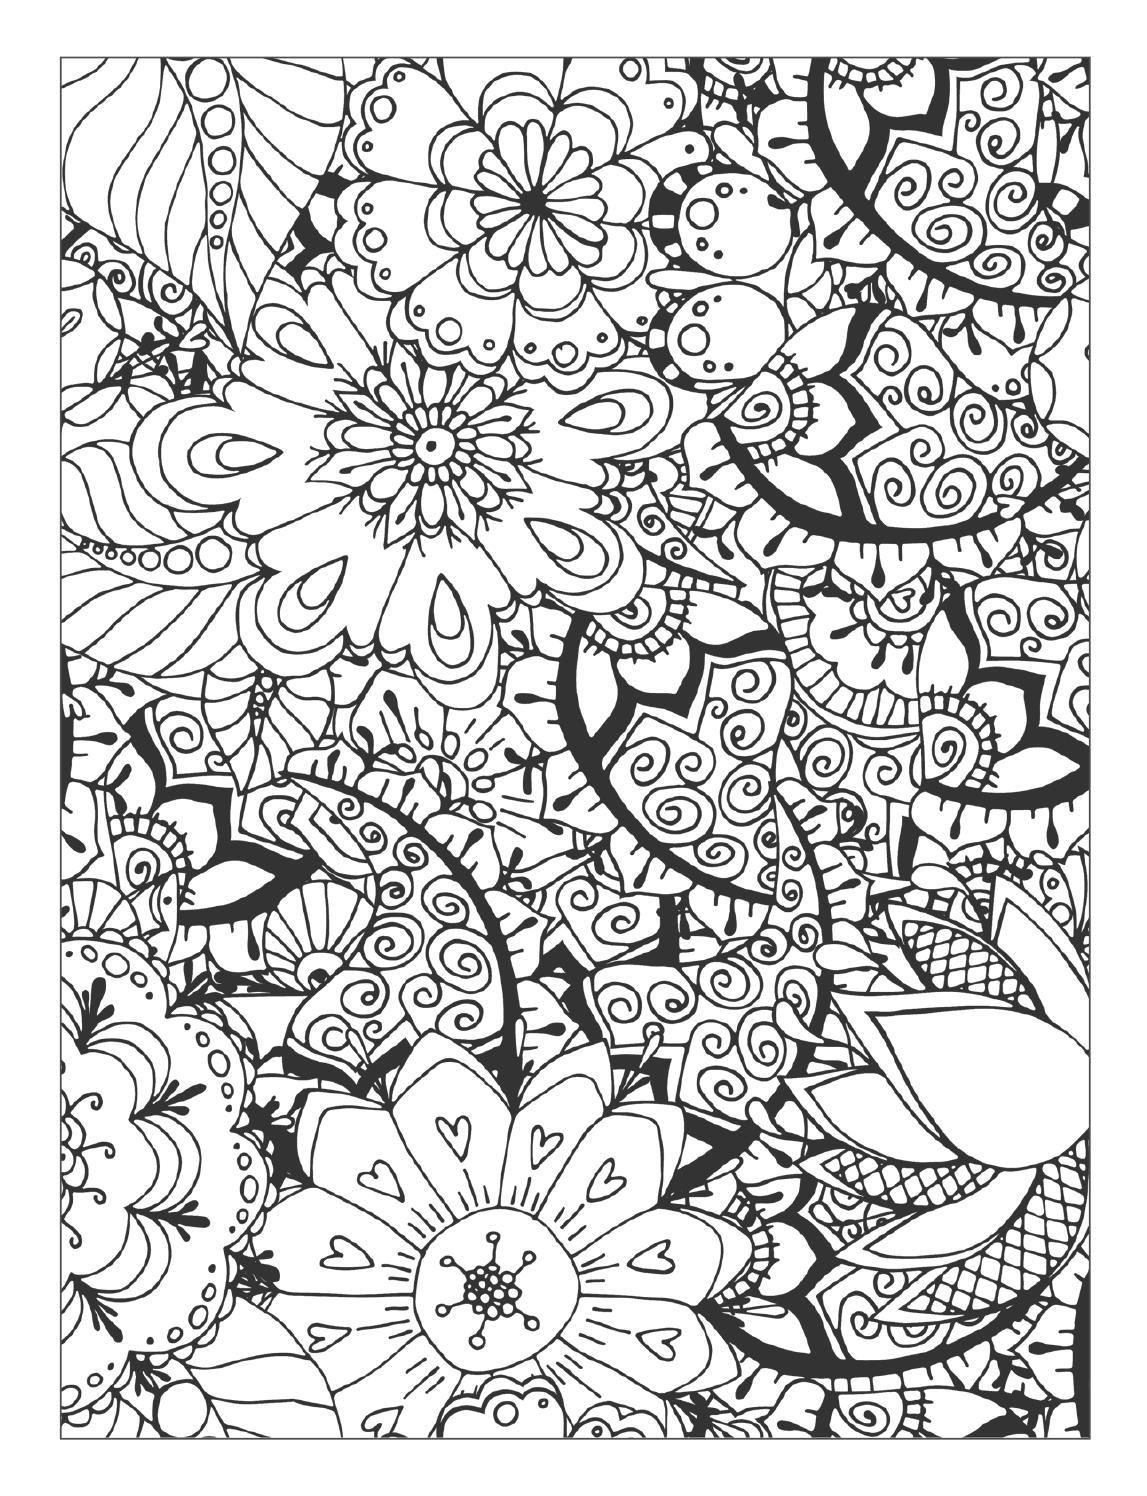 - Beautiful Flowers Detailed Floral Designs Coloring Book - Preview